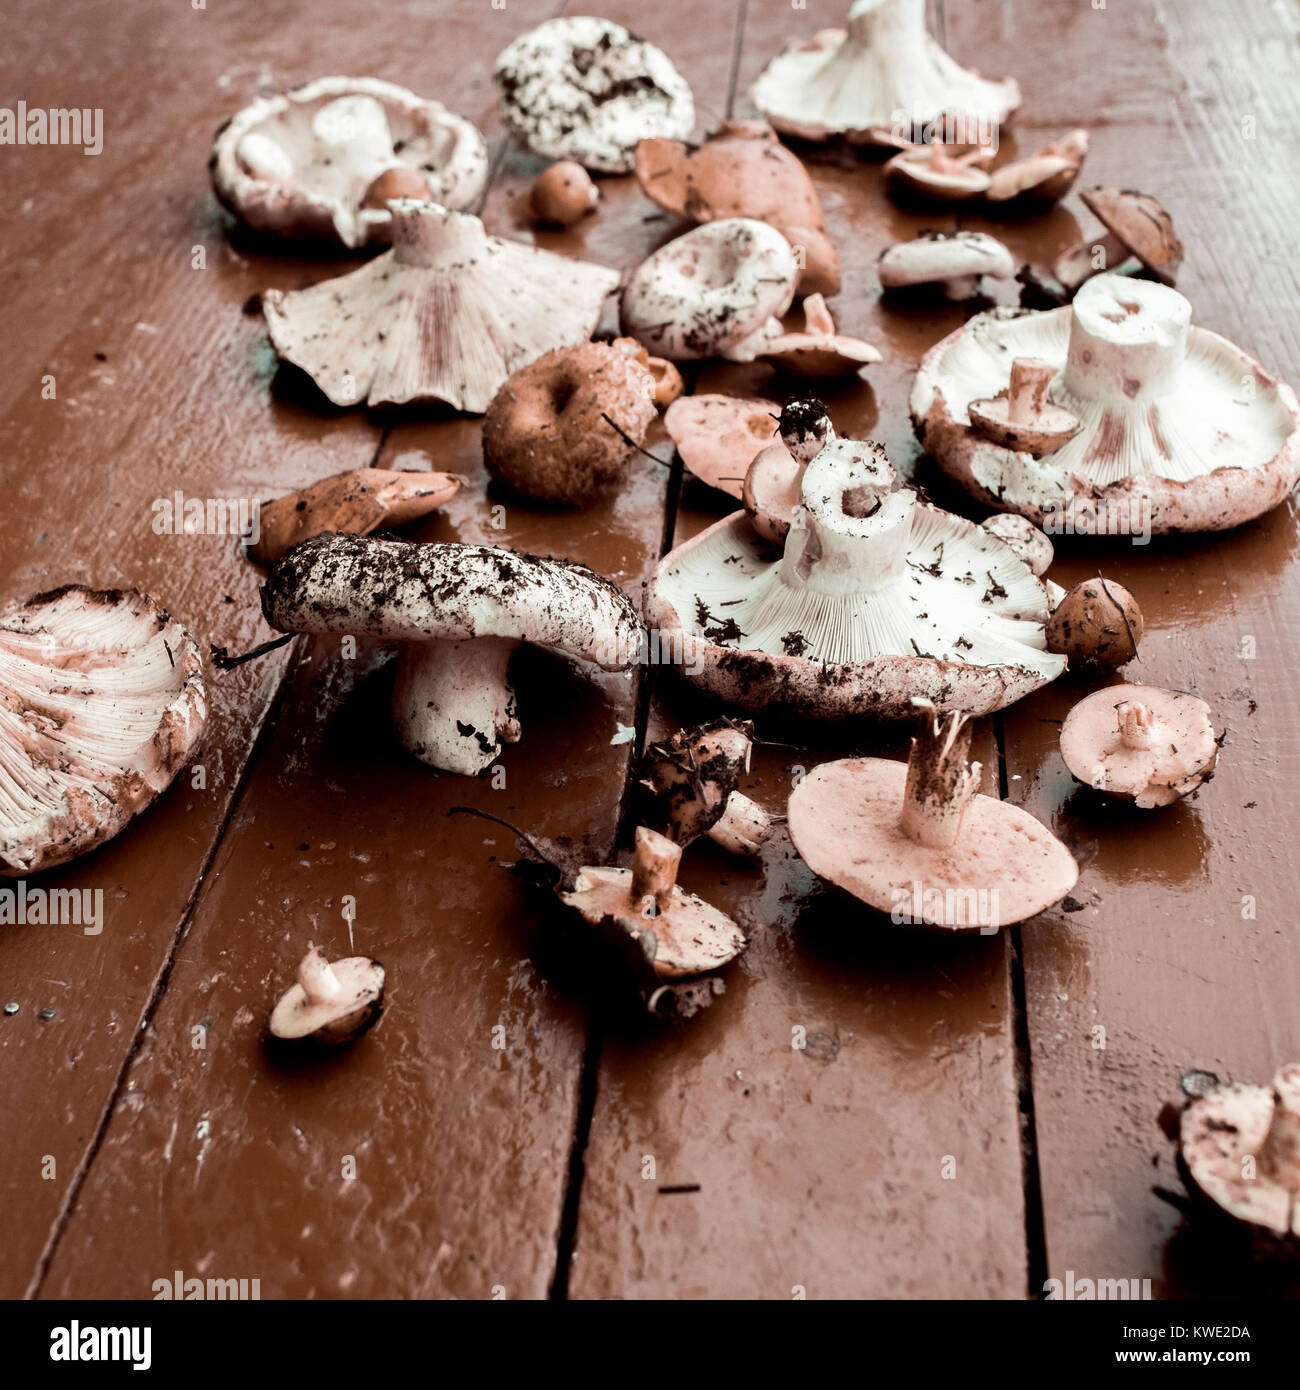 Close-up of mushrooms on wooden table - Stock Image